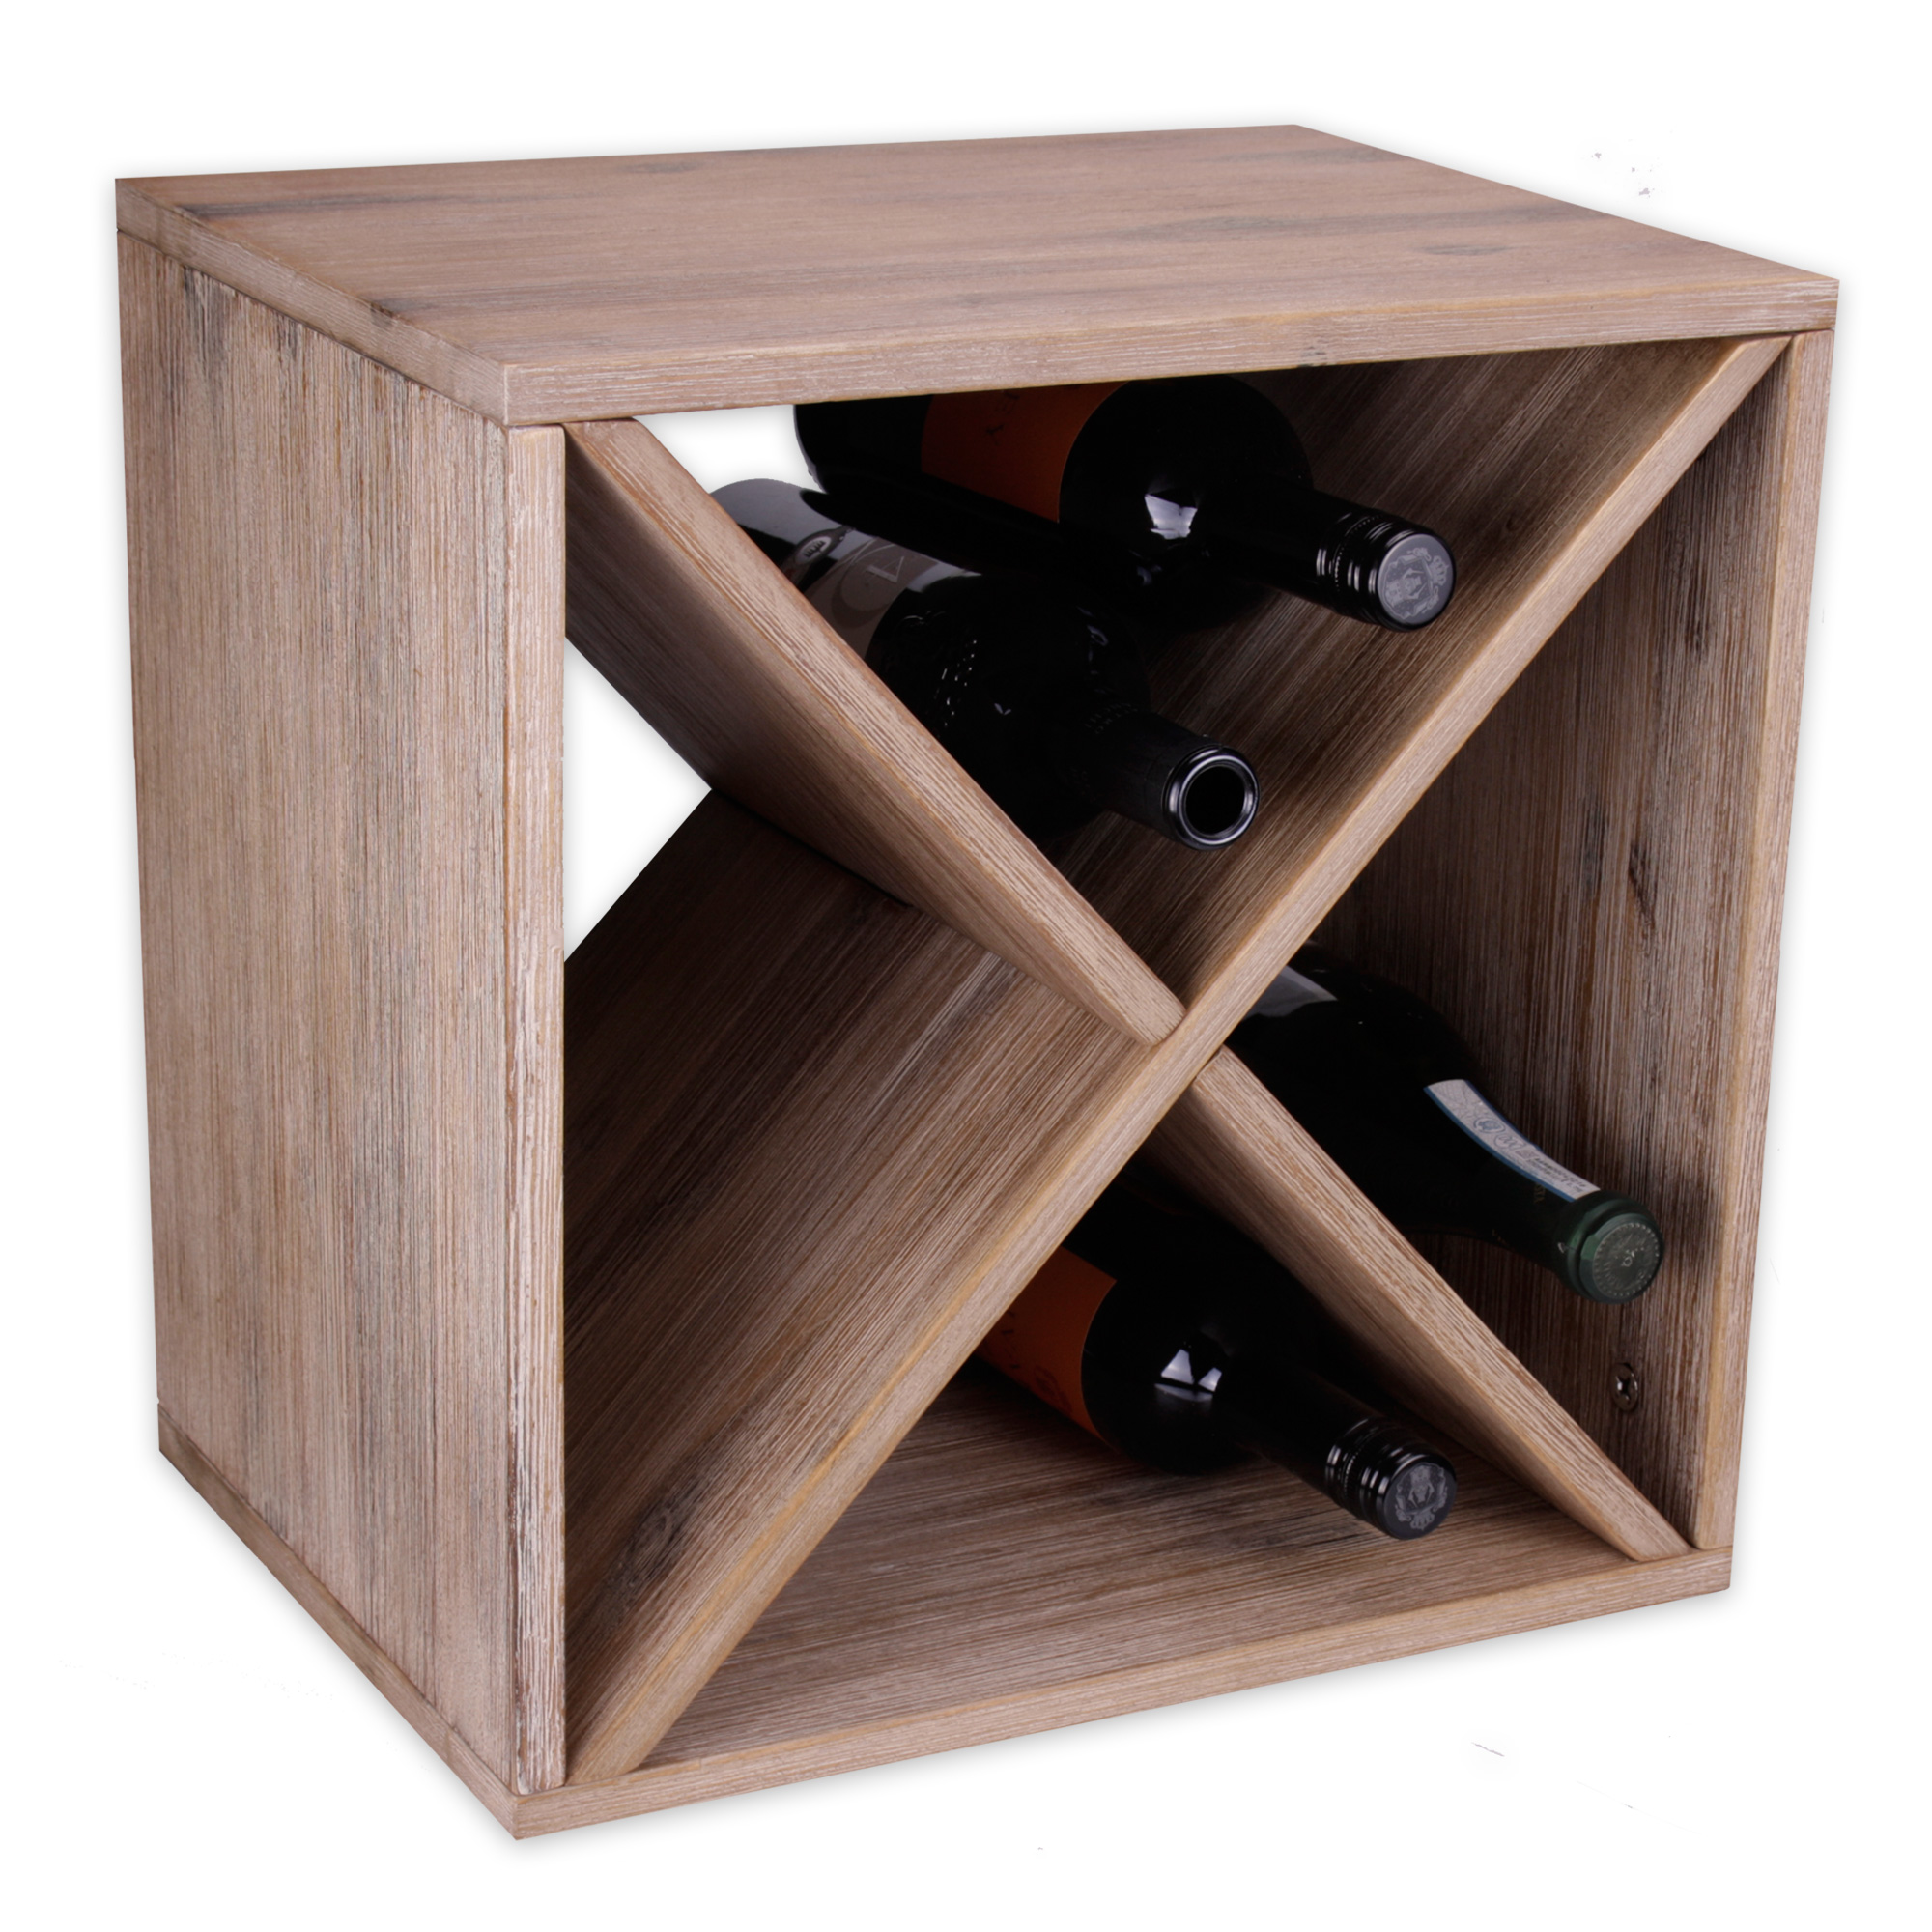 modernes weinregal flaschenregal weinregal wein regal holz braun 40 x 40 x 30 cm ebay. Black Bedroom Furniture Sets. Home Design Ideas